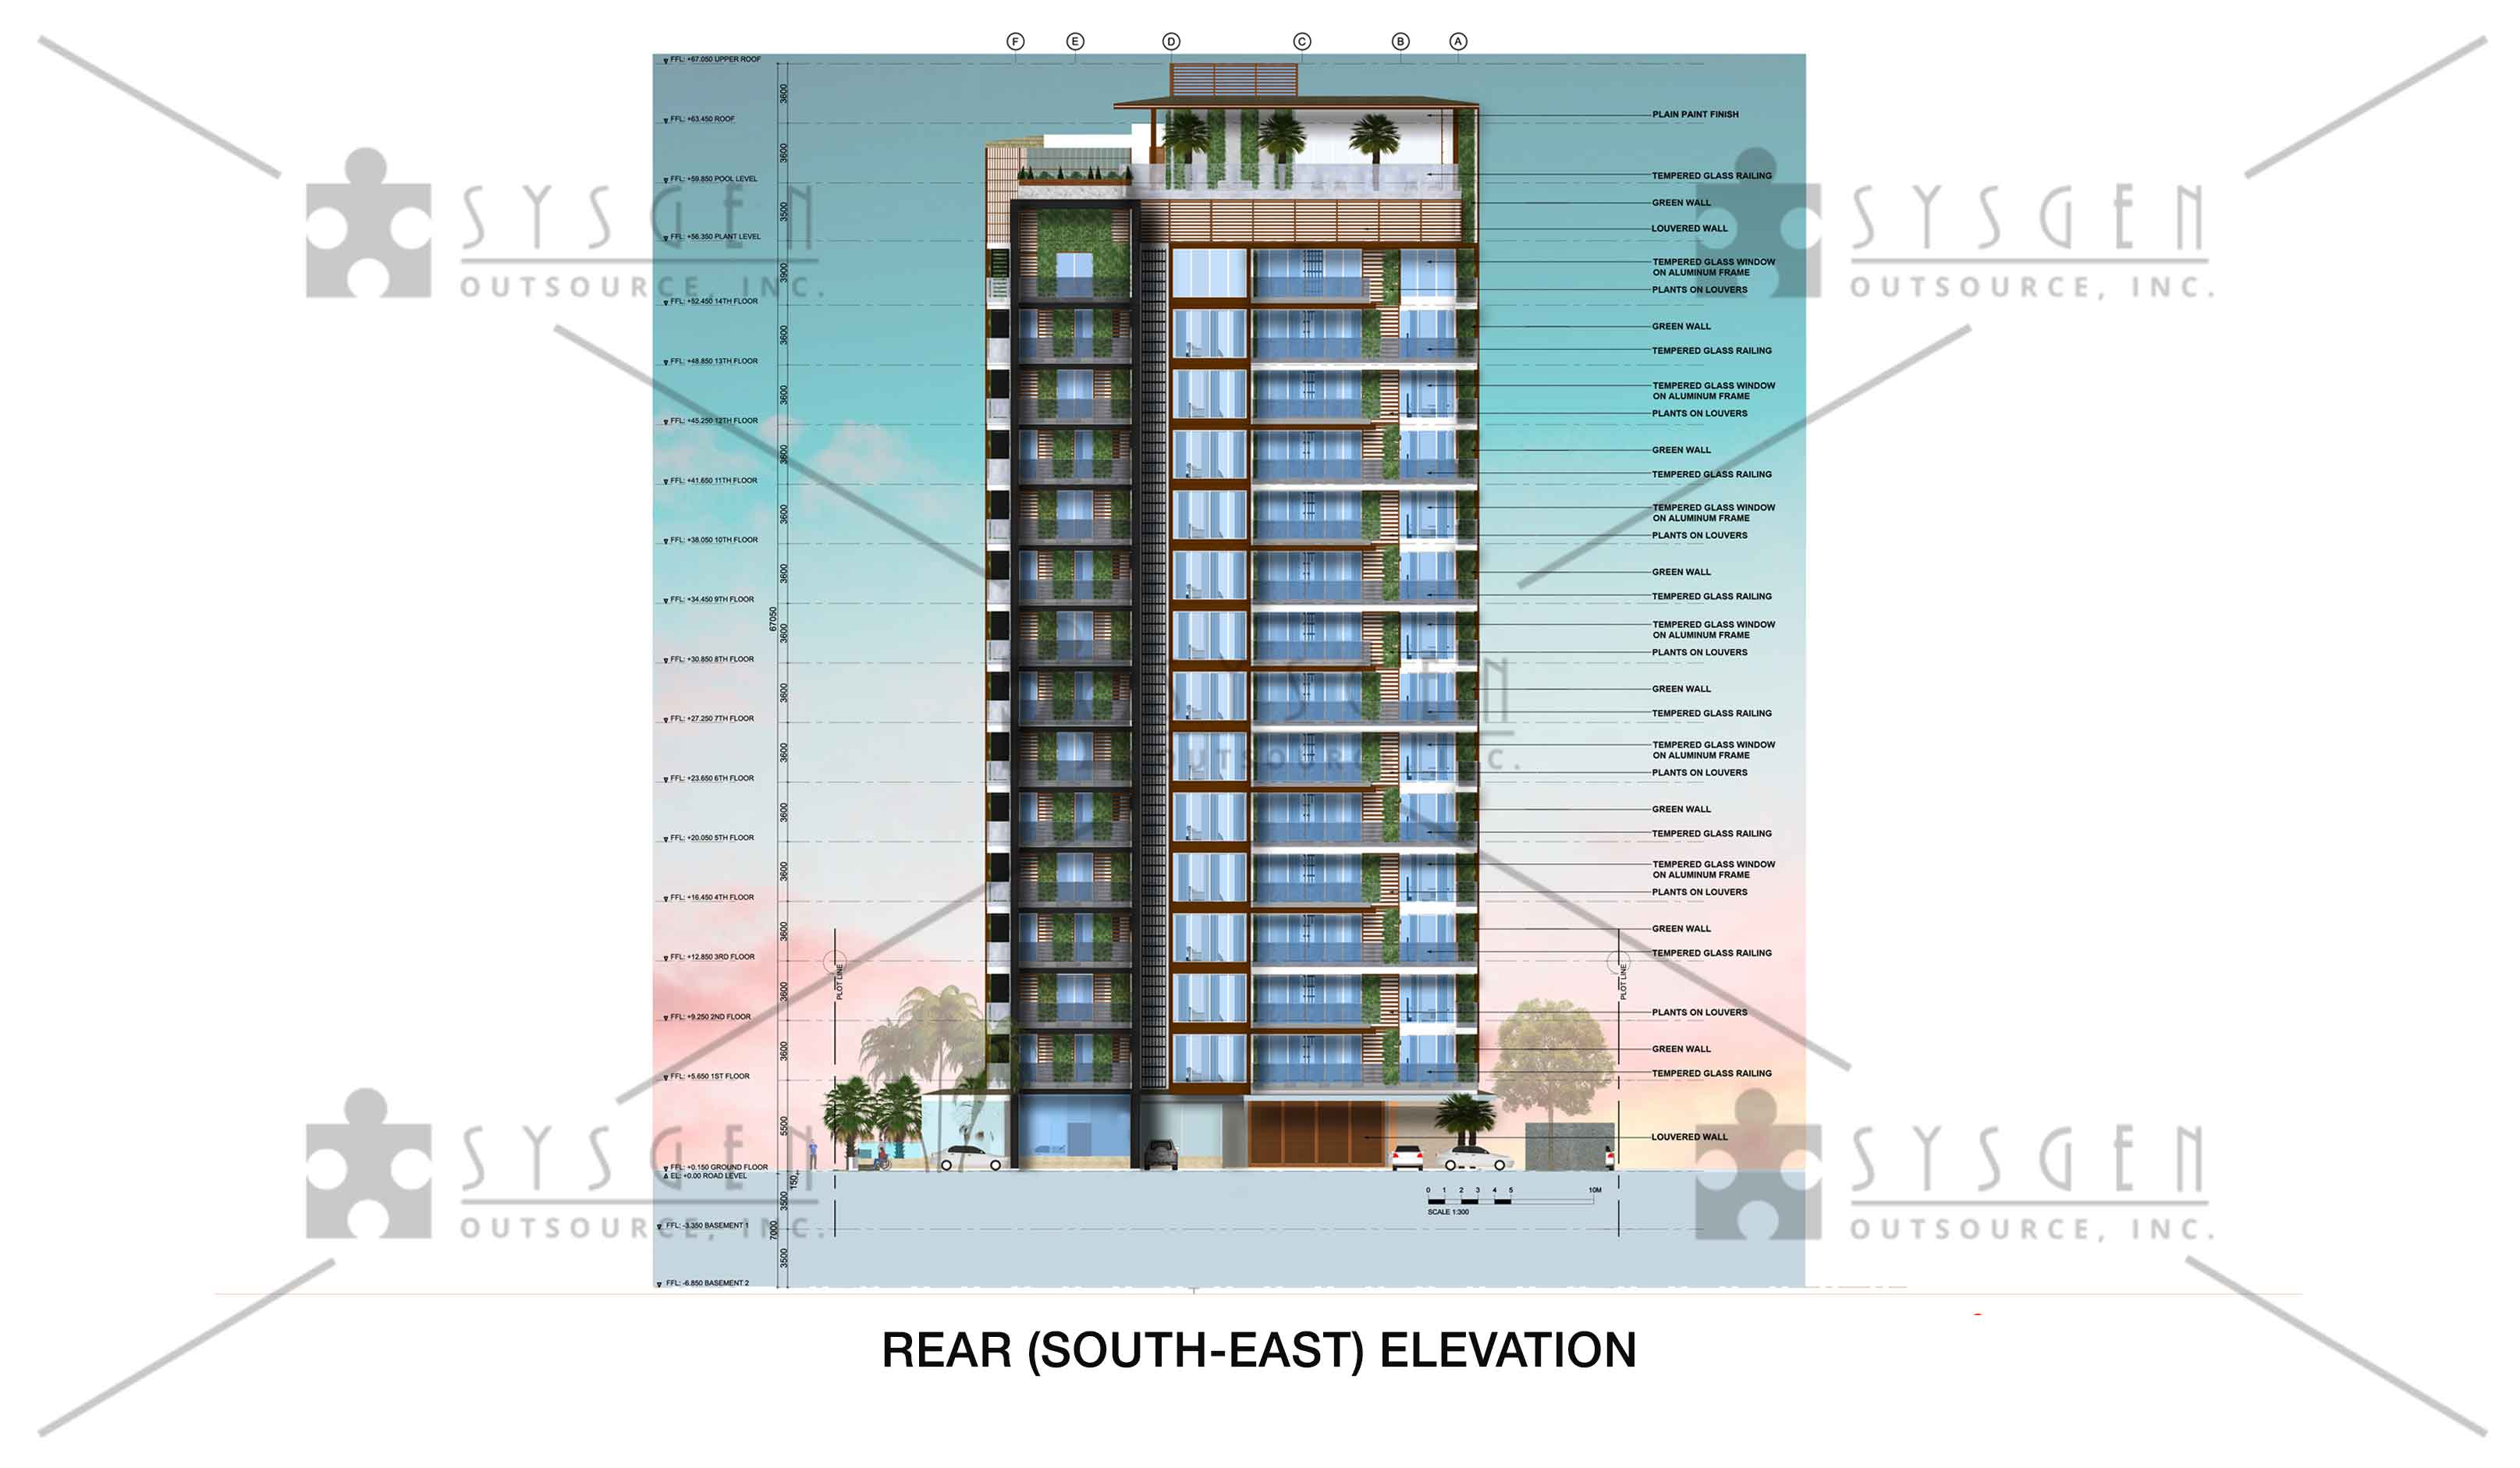 sysgen-outsource-cad-outsourcing-services-sketch-up-apartment11